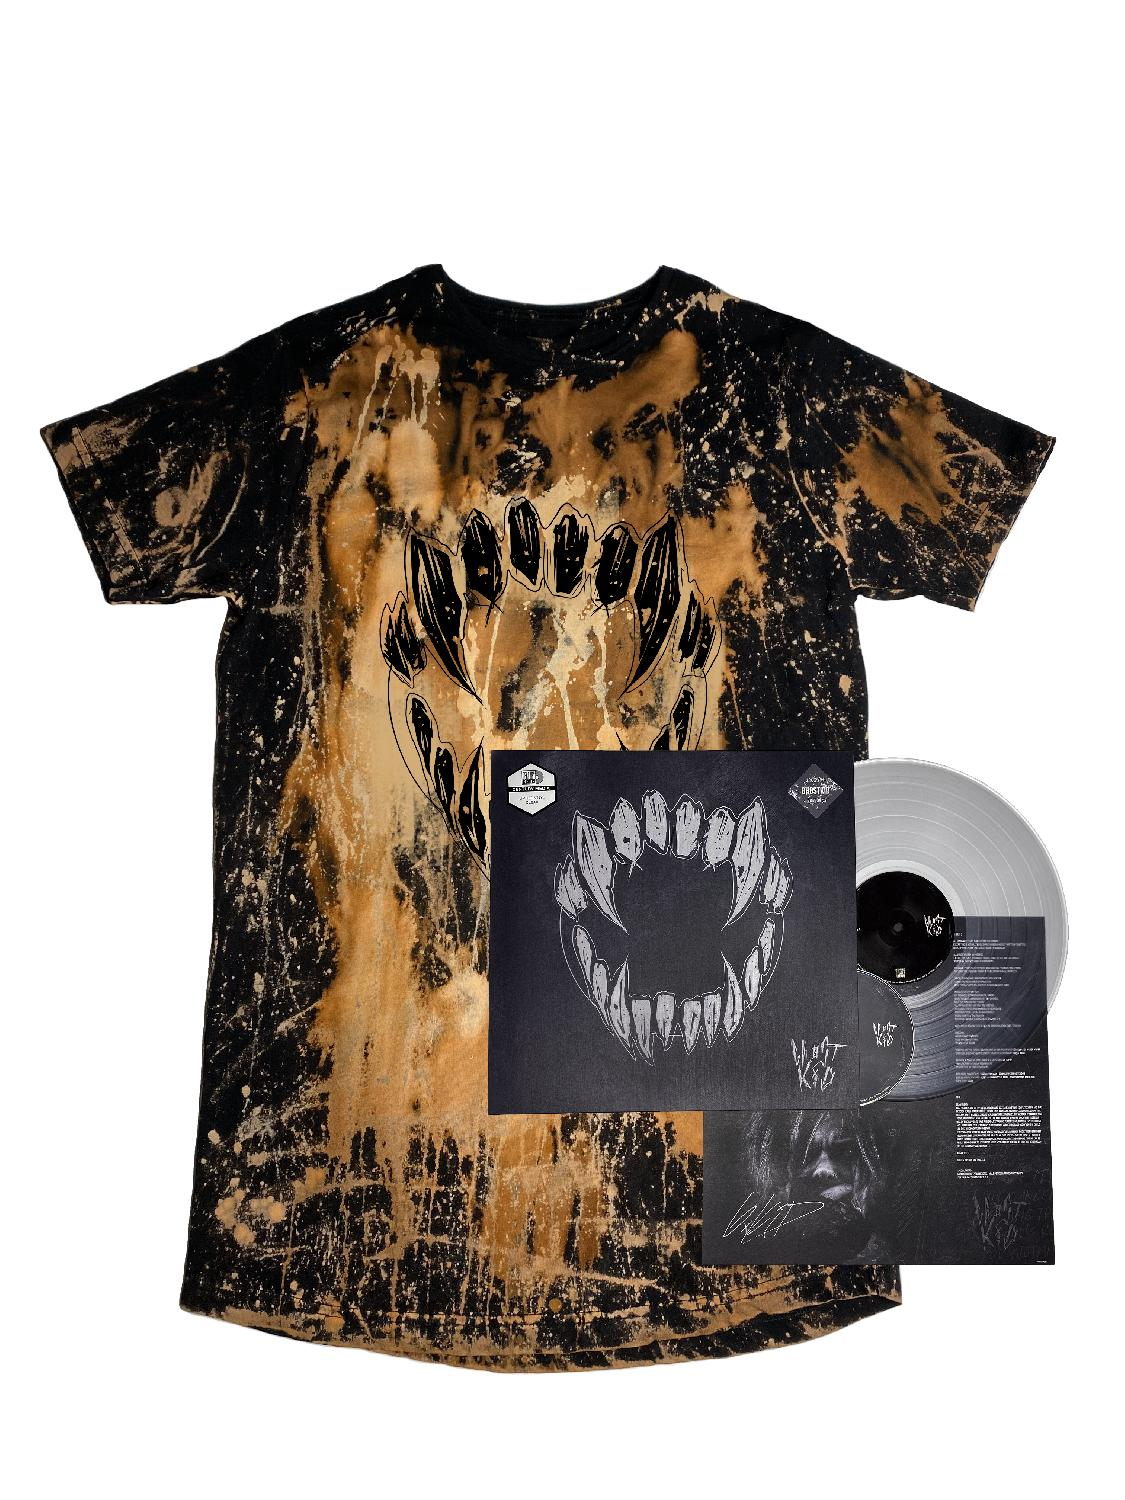 GHOSTKID PREORDER Ghøstkid - LIMITED VINYL PACKAGE Bundle, black